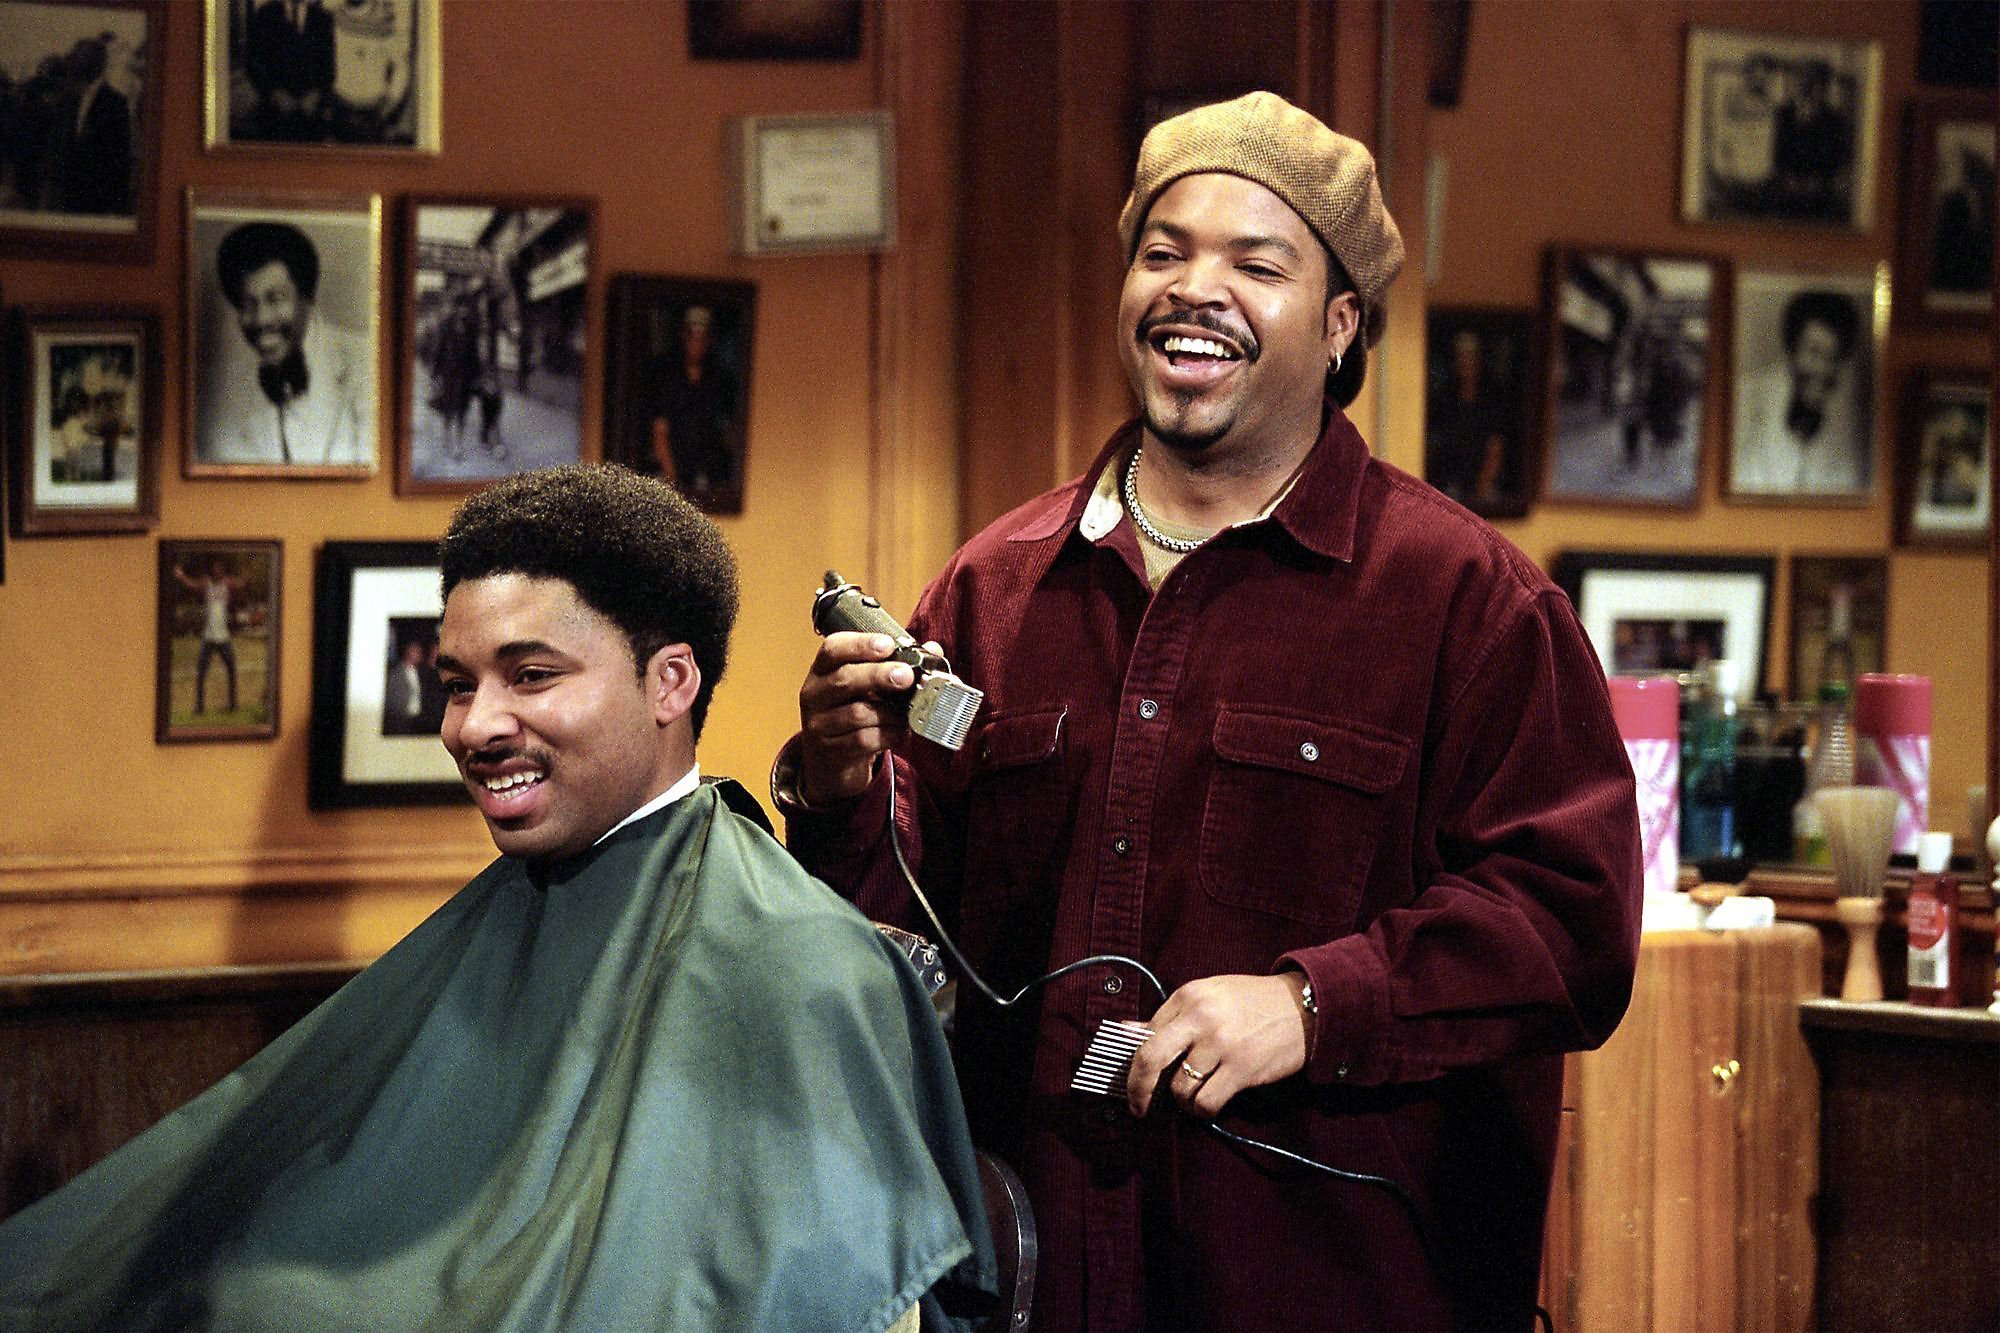 Ct barbershop the next cut to touch on chicago violence 20151123.jpg?ixlib=rails 1.1